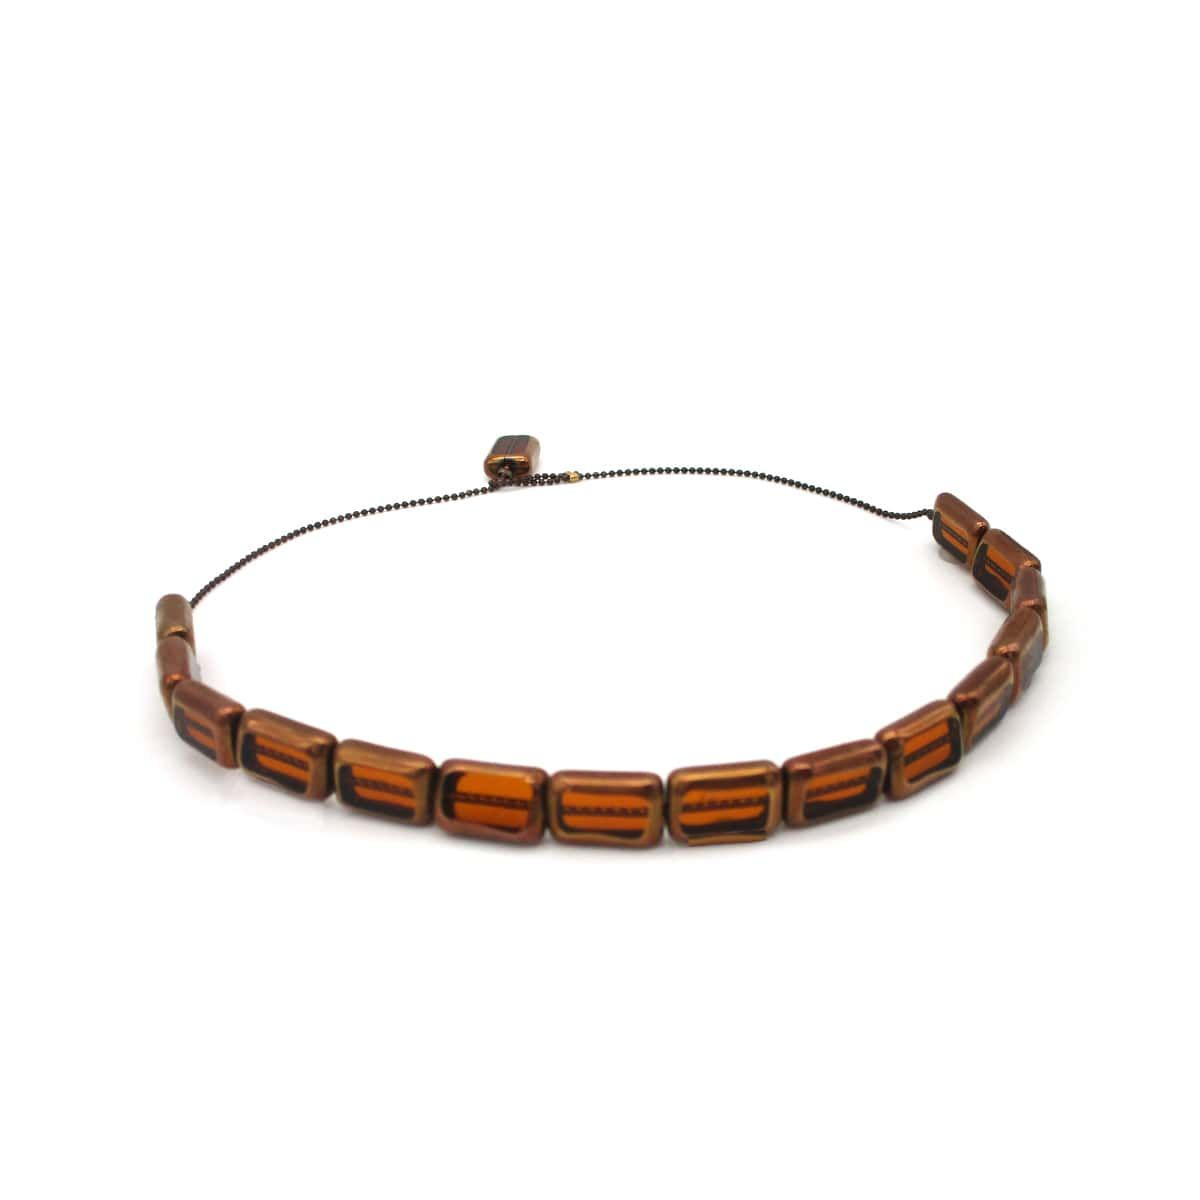 Penelope glass beads choker